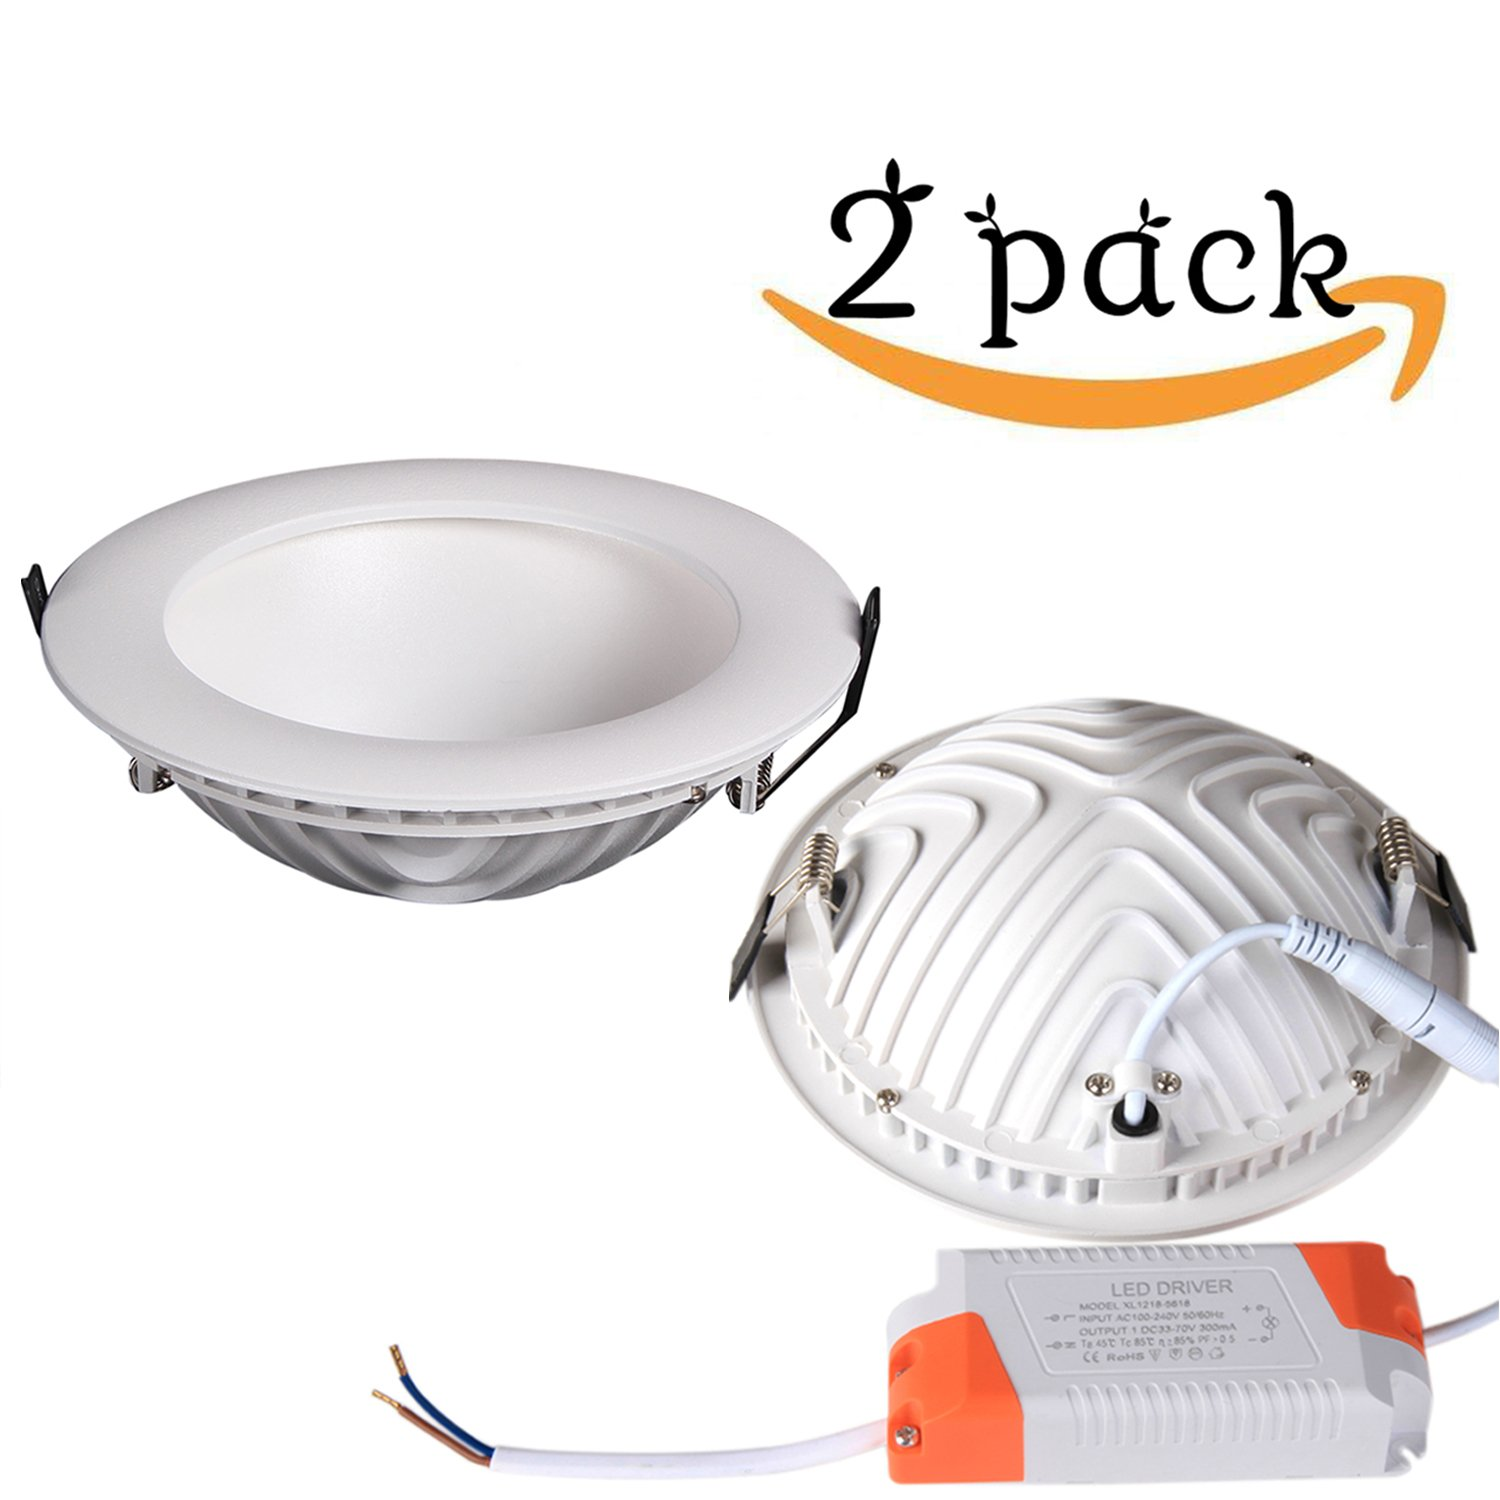 LED Recessed Lighting Fixture Retrofit Downlight Aluminum Ceiling Light 18Watt 6-inch 3000K Warm White CRI80+, Round Flush Mount Lighting,Down lighting for Home, Office, Commercial (2 PACK)…